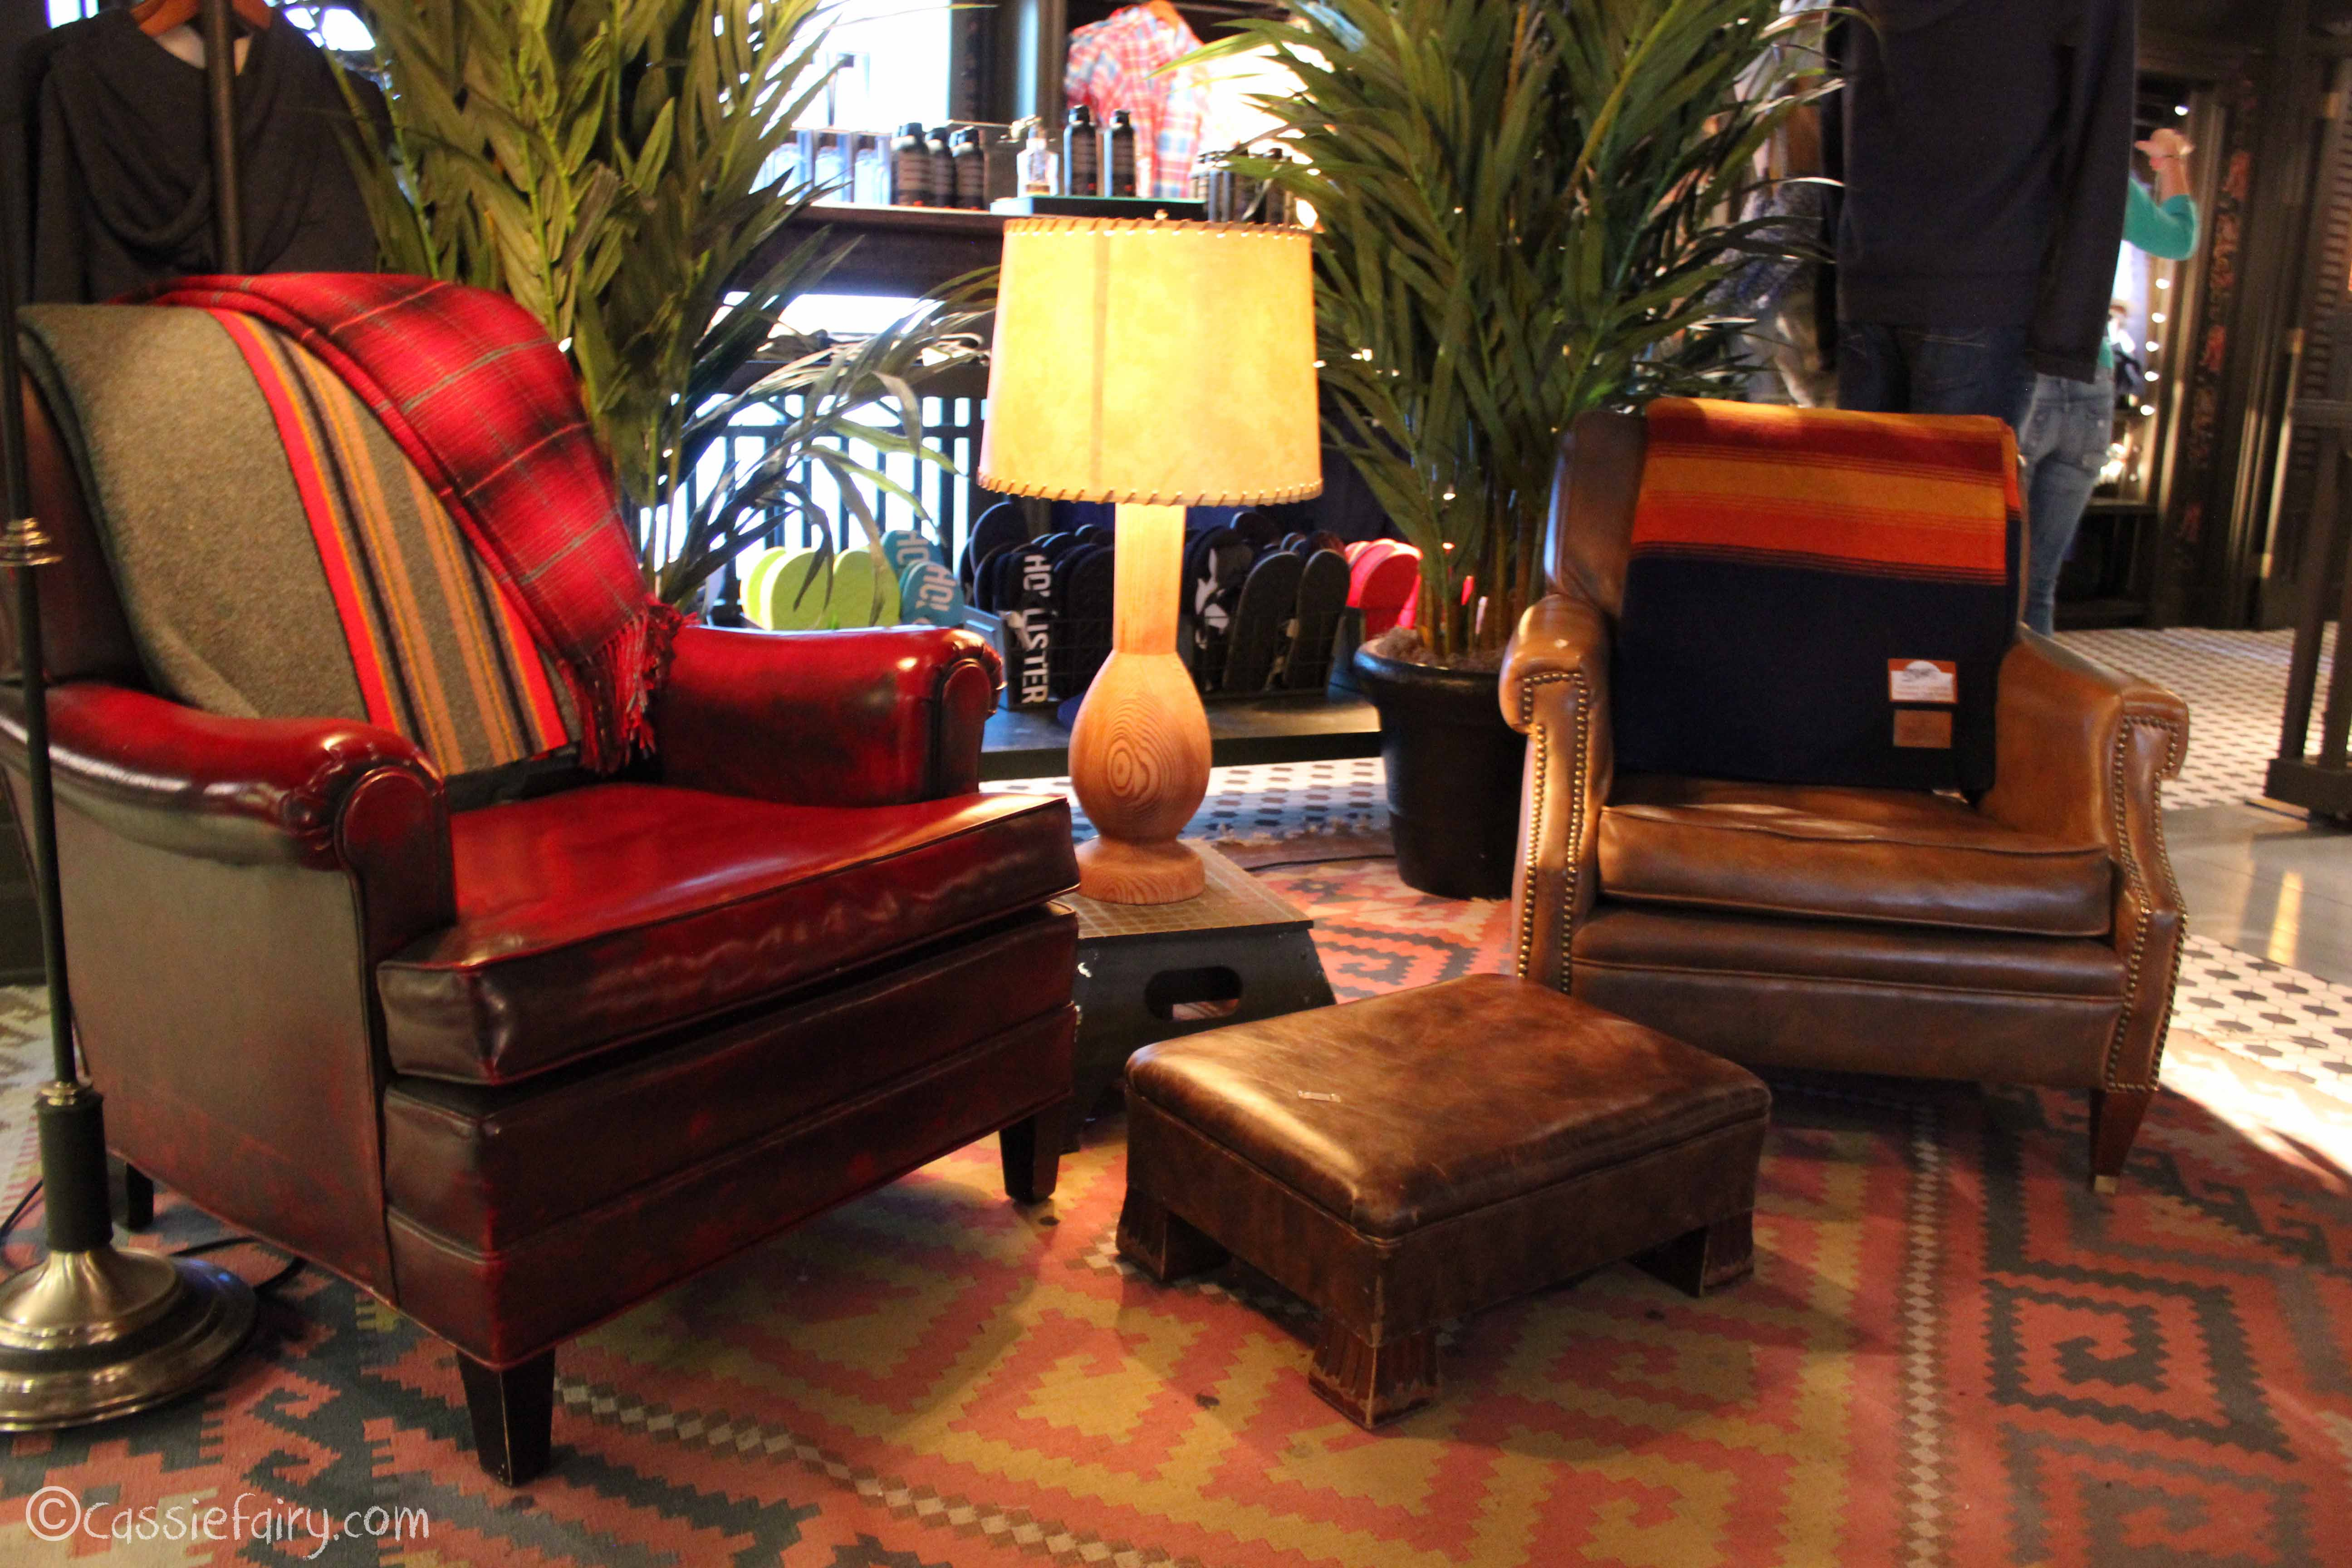 Hollister store interior design inspiration my thrifty for Design chair shop